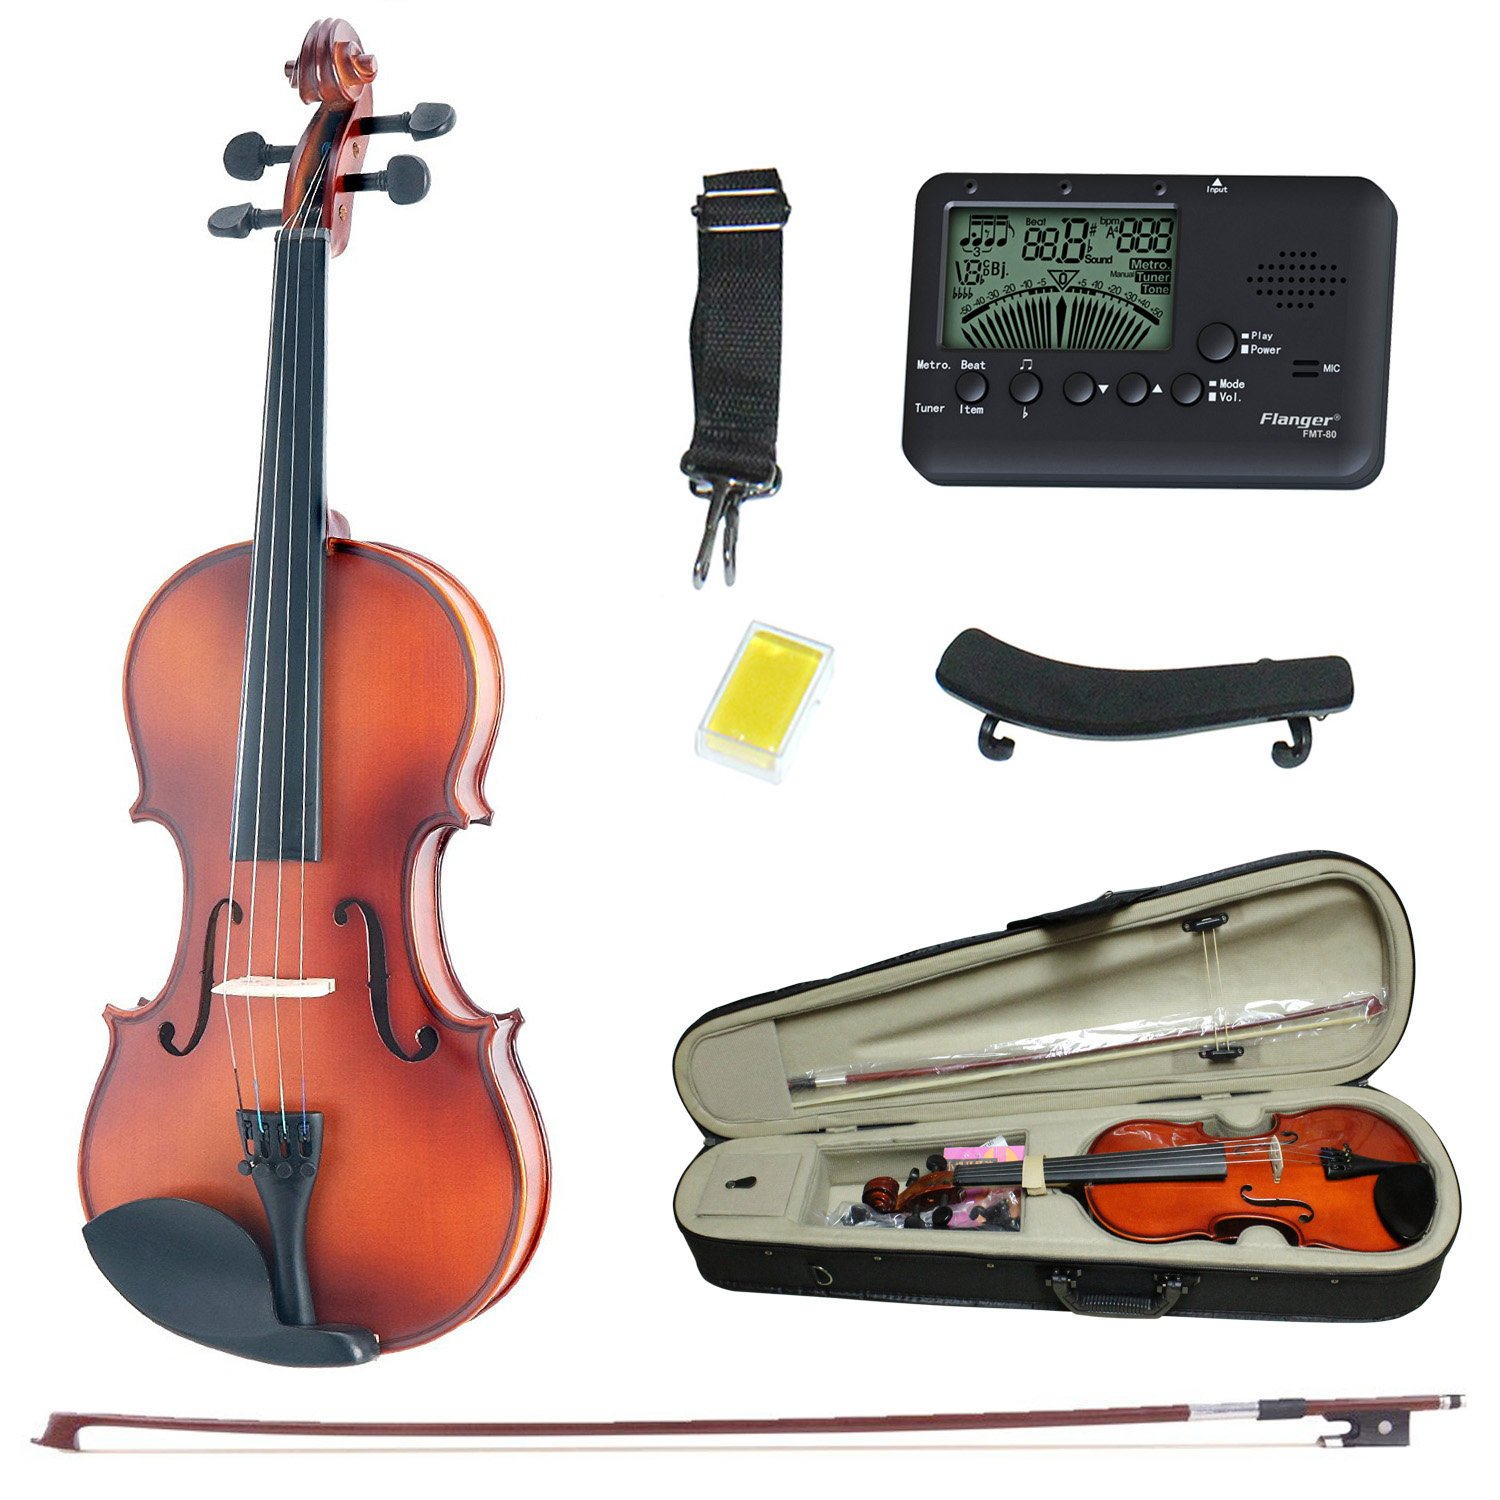 Violin 4/4 Full Size, Solid Wood Satin Antique Violin with Hard Case, Bow, Rosin - Size 4/4